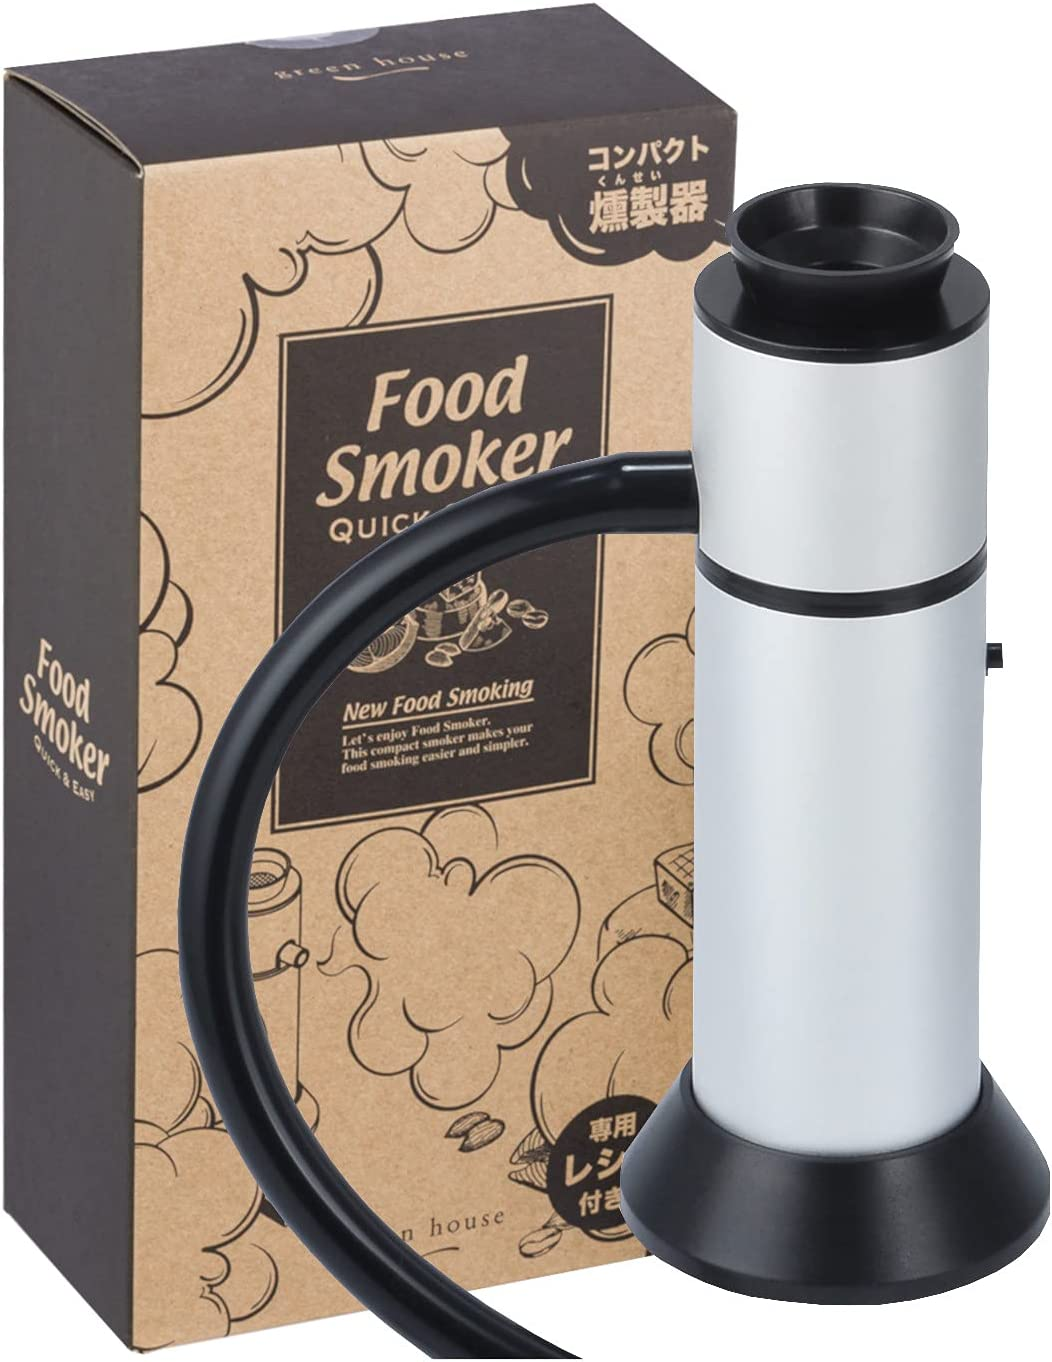 GREEN HOUSE Portable Smoking Gun - Smoker Kit for Indoor Outdoor, Meat, Sausage, Cheeses, Potato chips. Removable Top-Easy to clean. Perfect Gift for Birthday